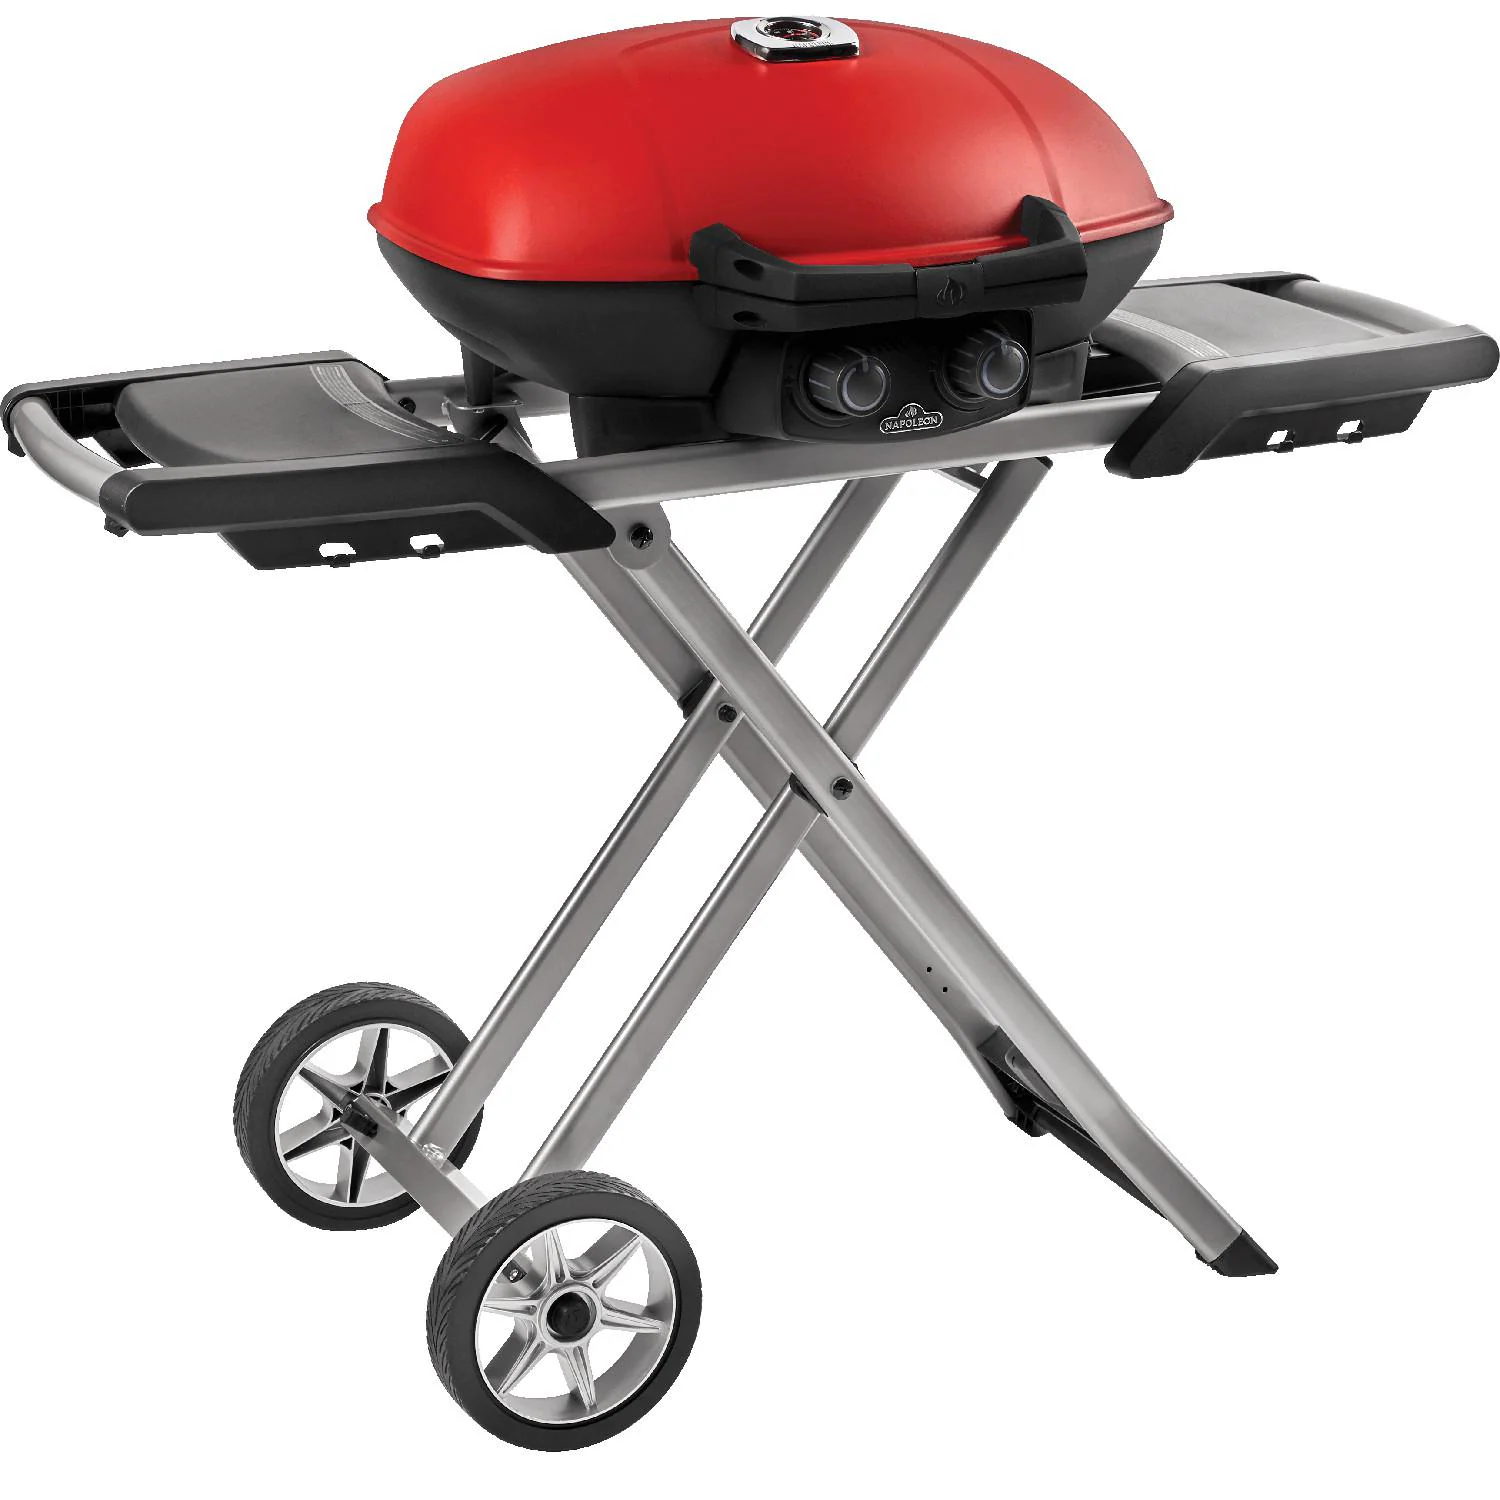 Napoleon TravelQ 285 Portable Propane Gas Grill with Griddle - Red - TQ285-RD-1-A